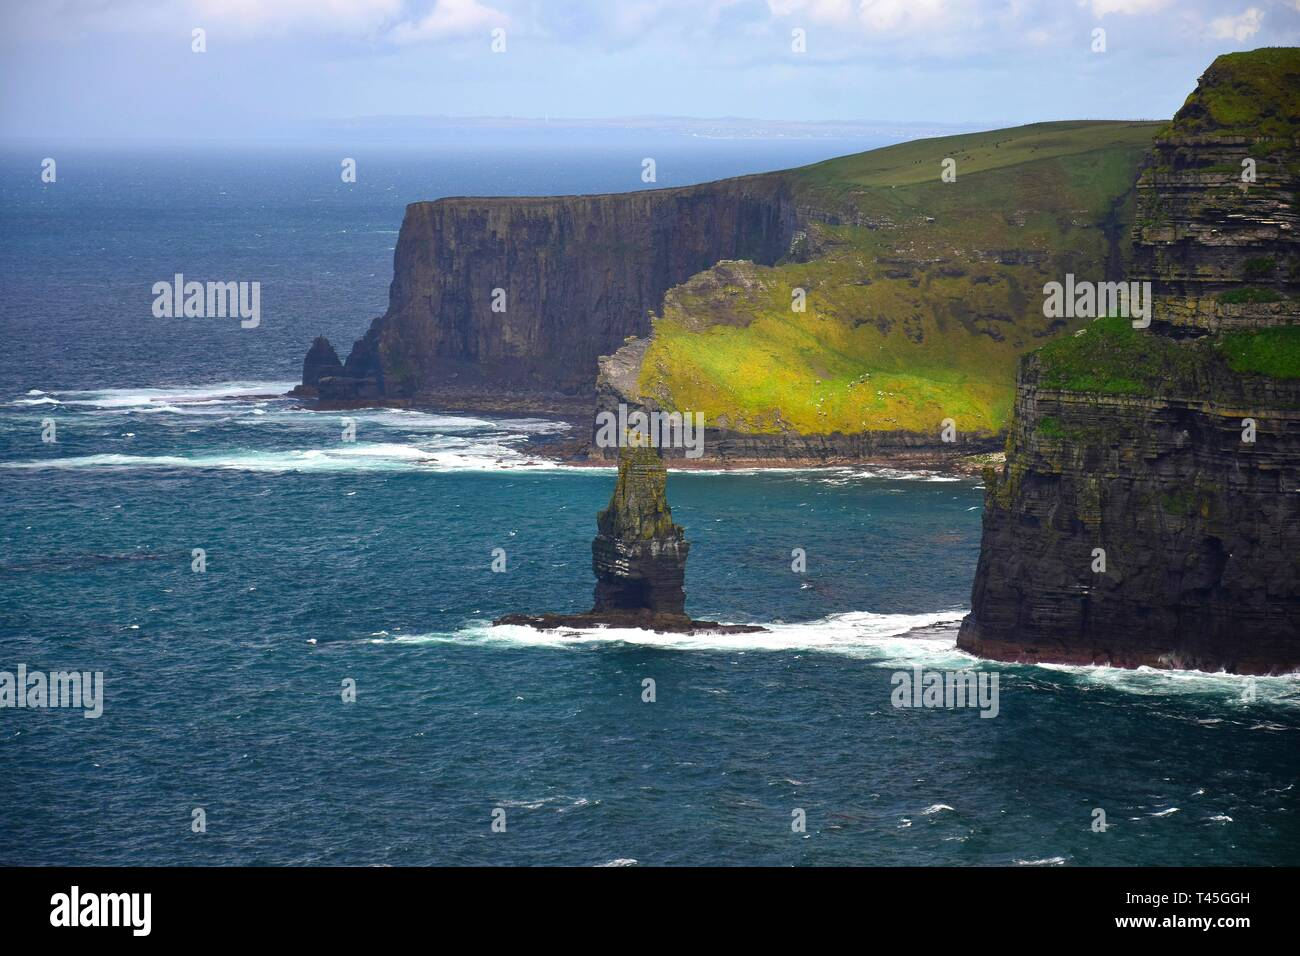 The Cliffs of Moher on the west coast of Ireland in County Clare. - Stock Image